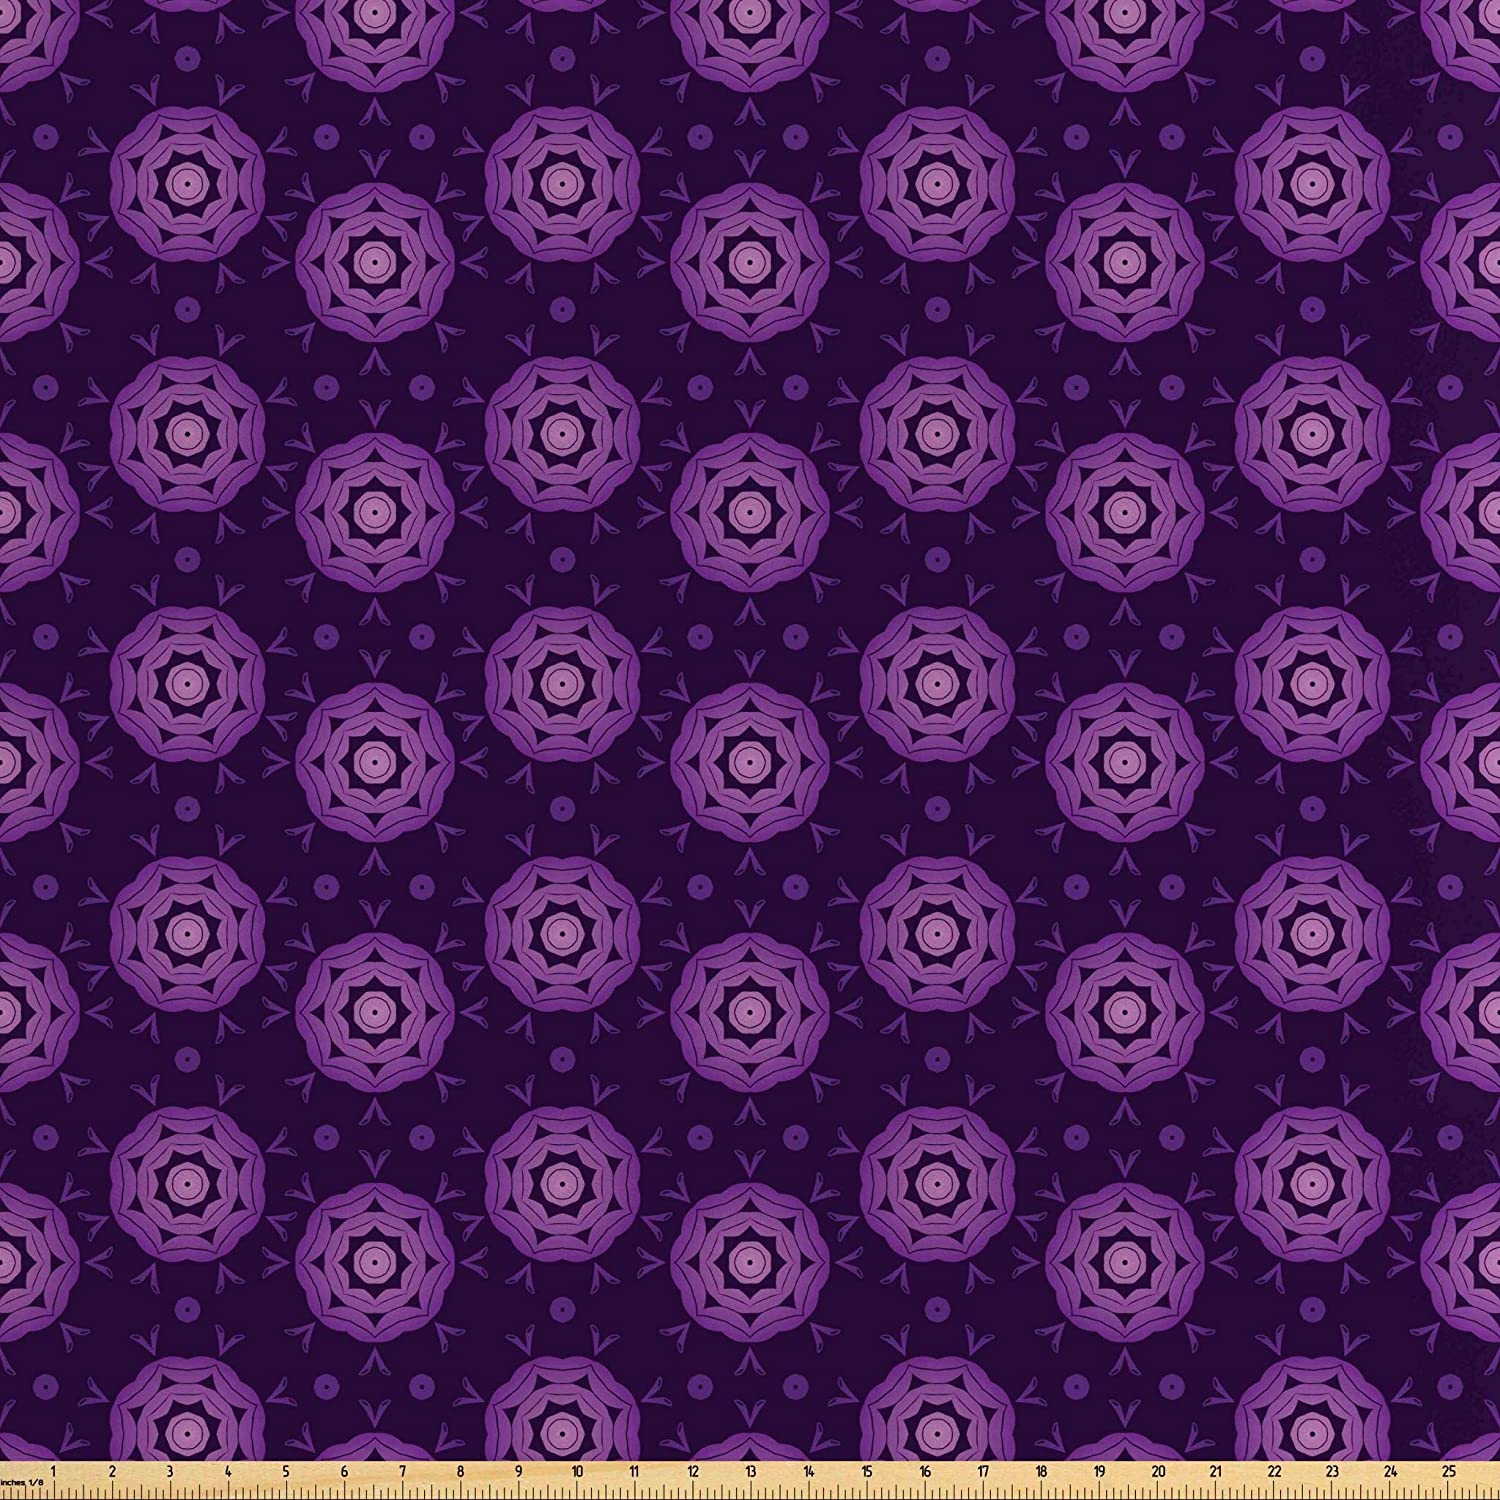 Lunarable Floral Fabric by The Yard, Mandala Style Arrangement with Arrows and Dots South Ornamental Design, Decorative Satin Fabric for Home Textiles and Crafts, 10 Yards, Purple Dark Purple